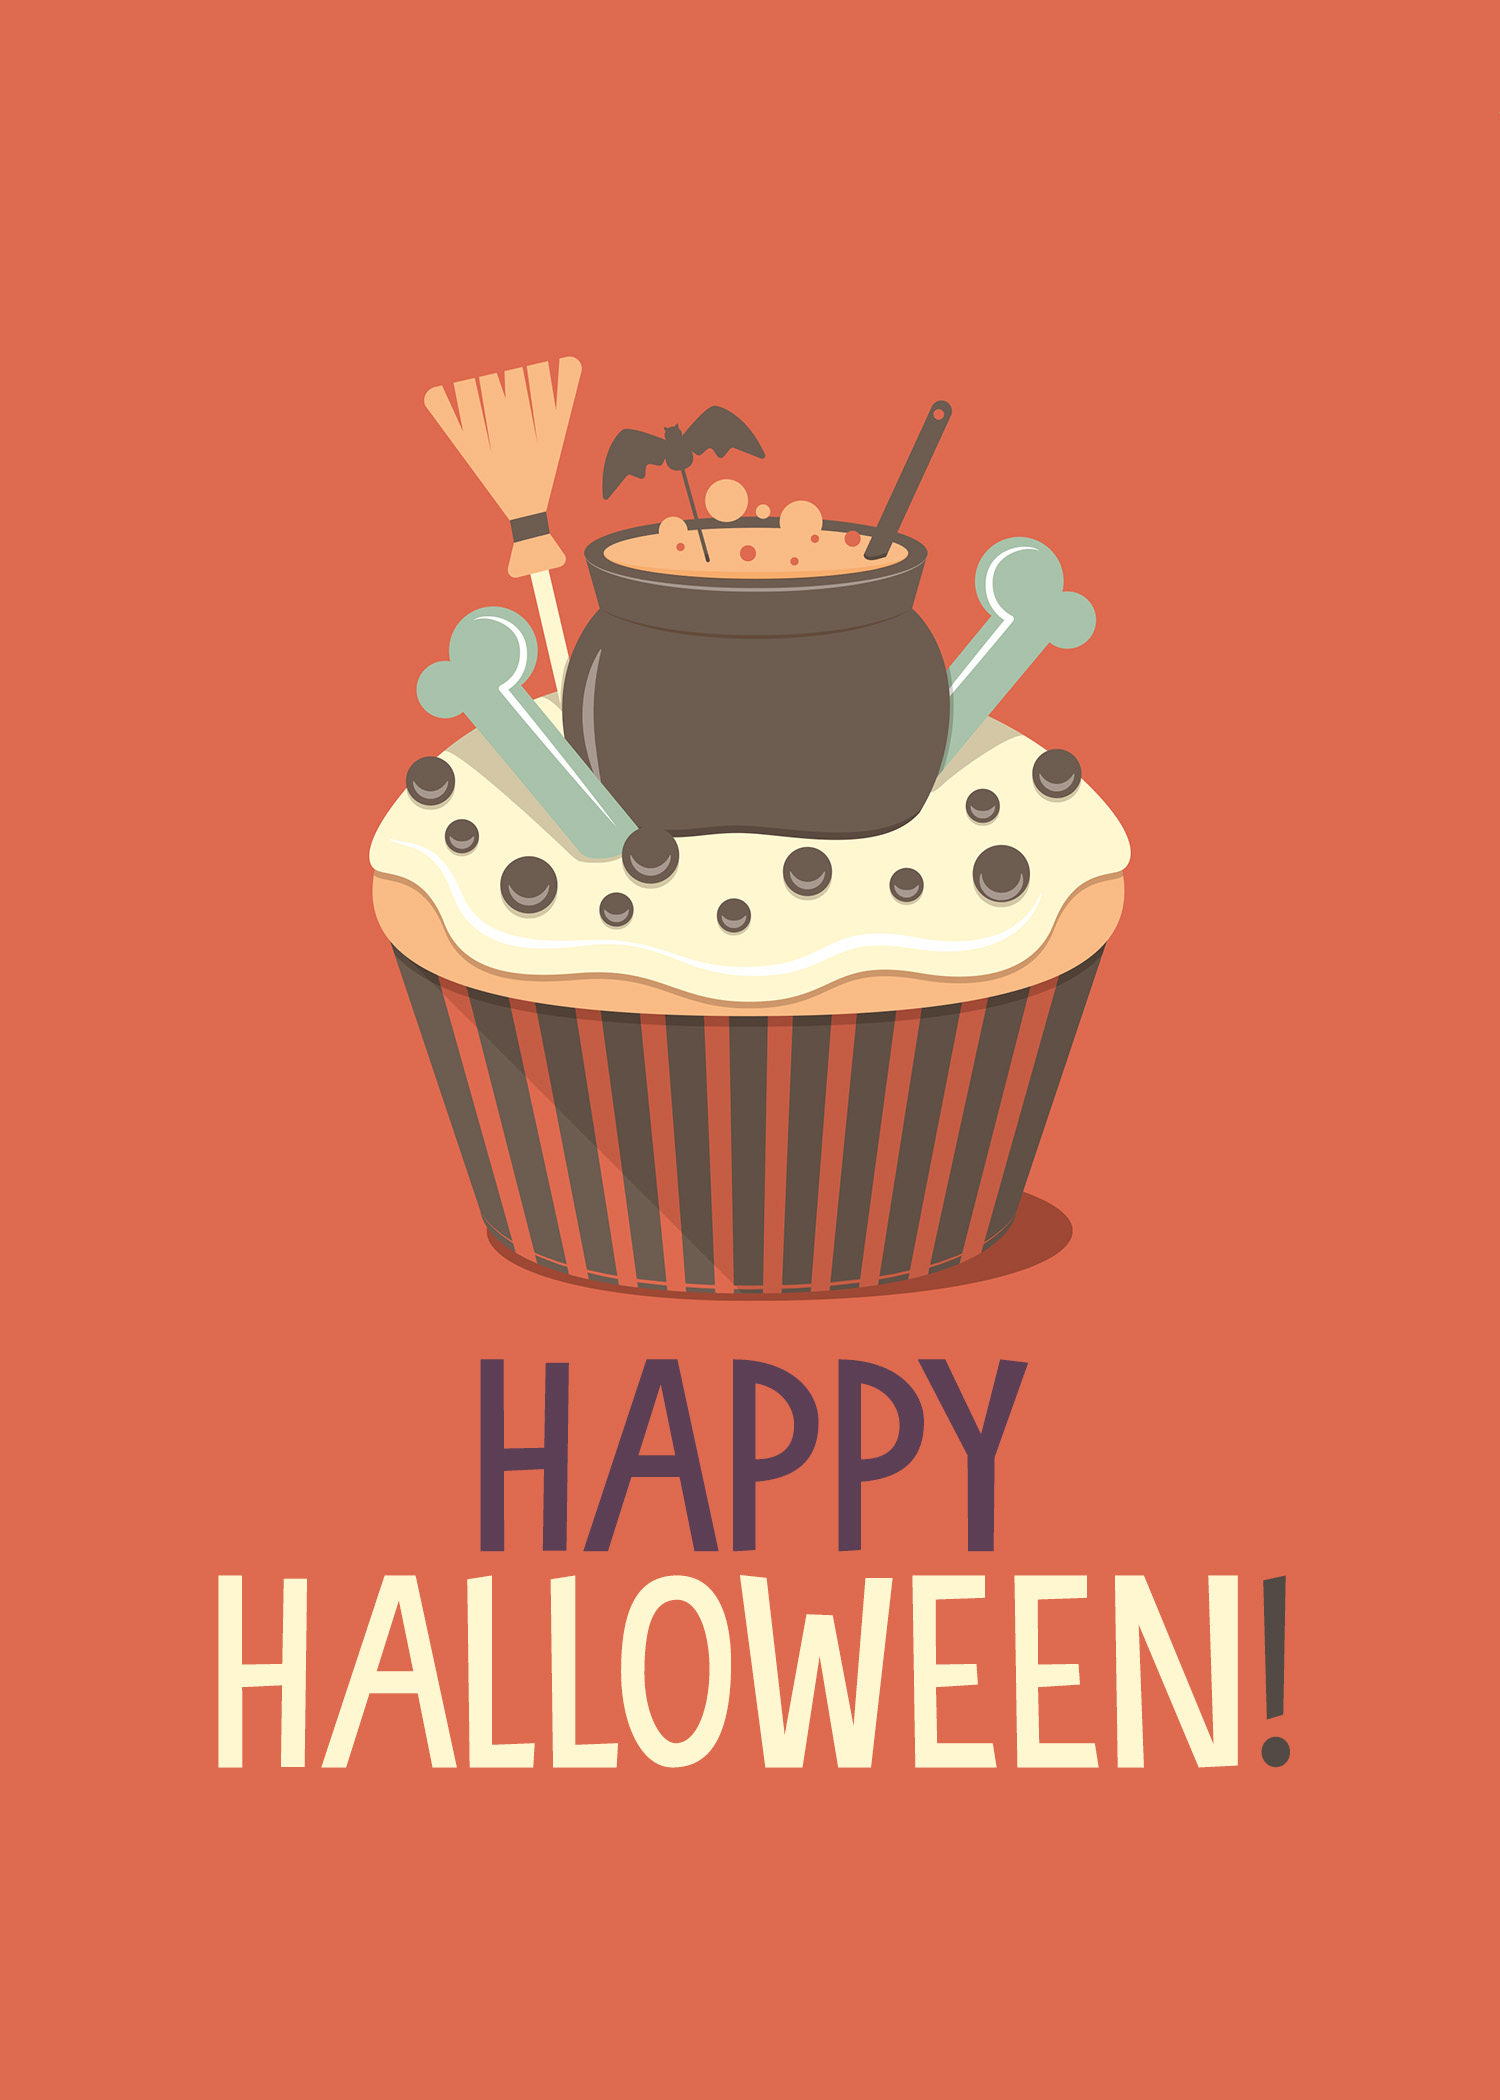 Free Printable Halloween Cupcake Prints The Cottage Market